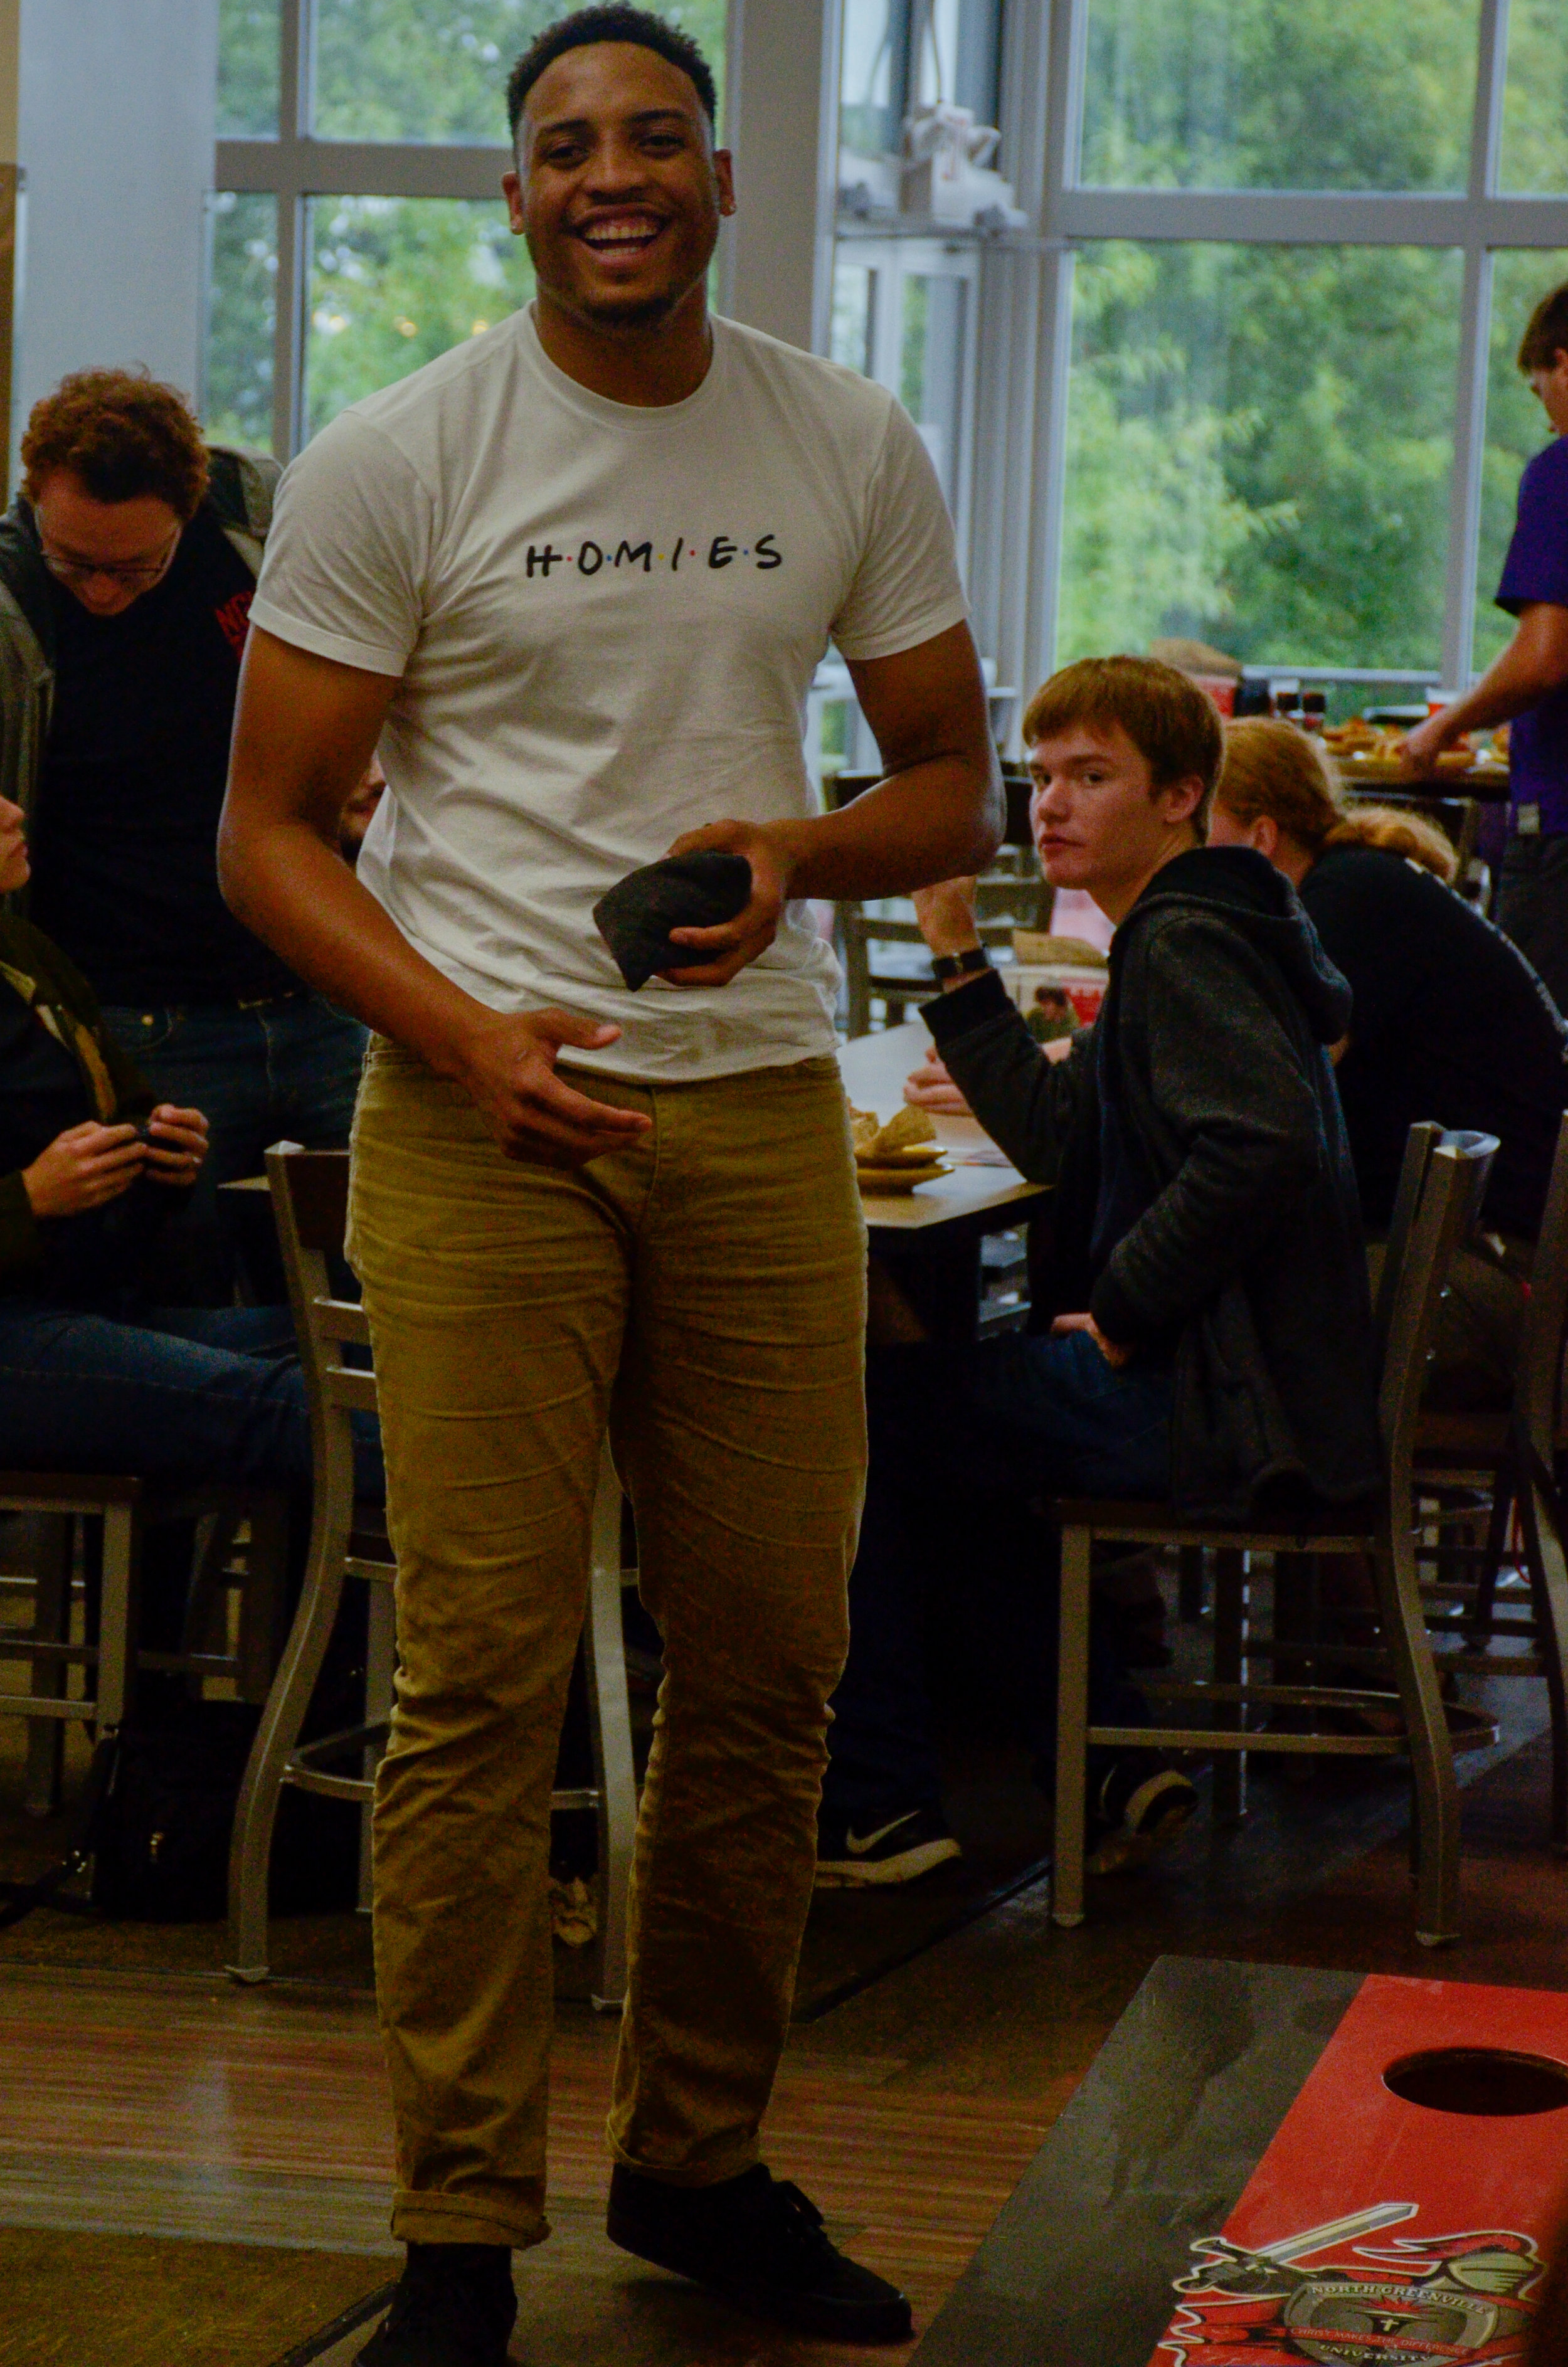 Chris Taylor, junior, gets his mind off of classes while playing Corn Hole in the cafeteria during a tailgating party before the football game on Thursday.